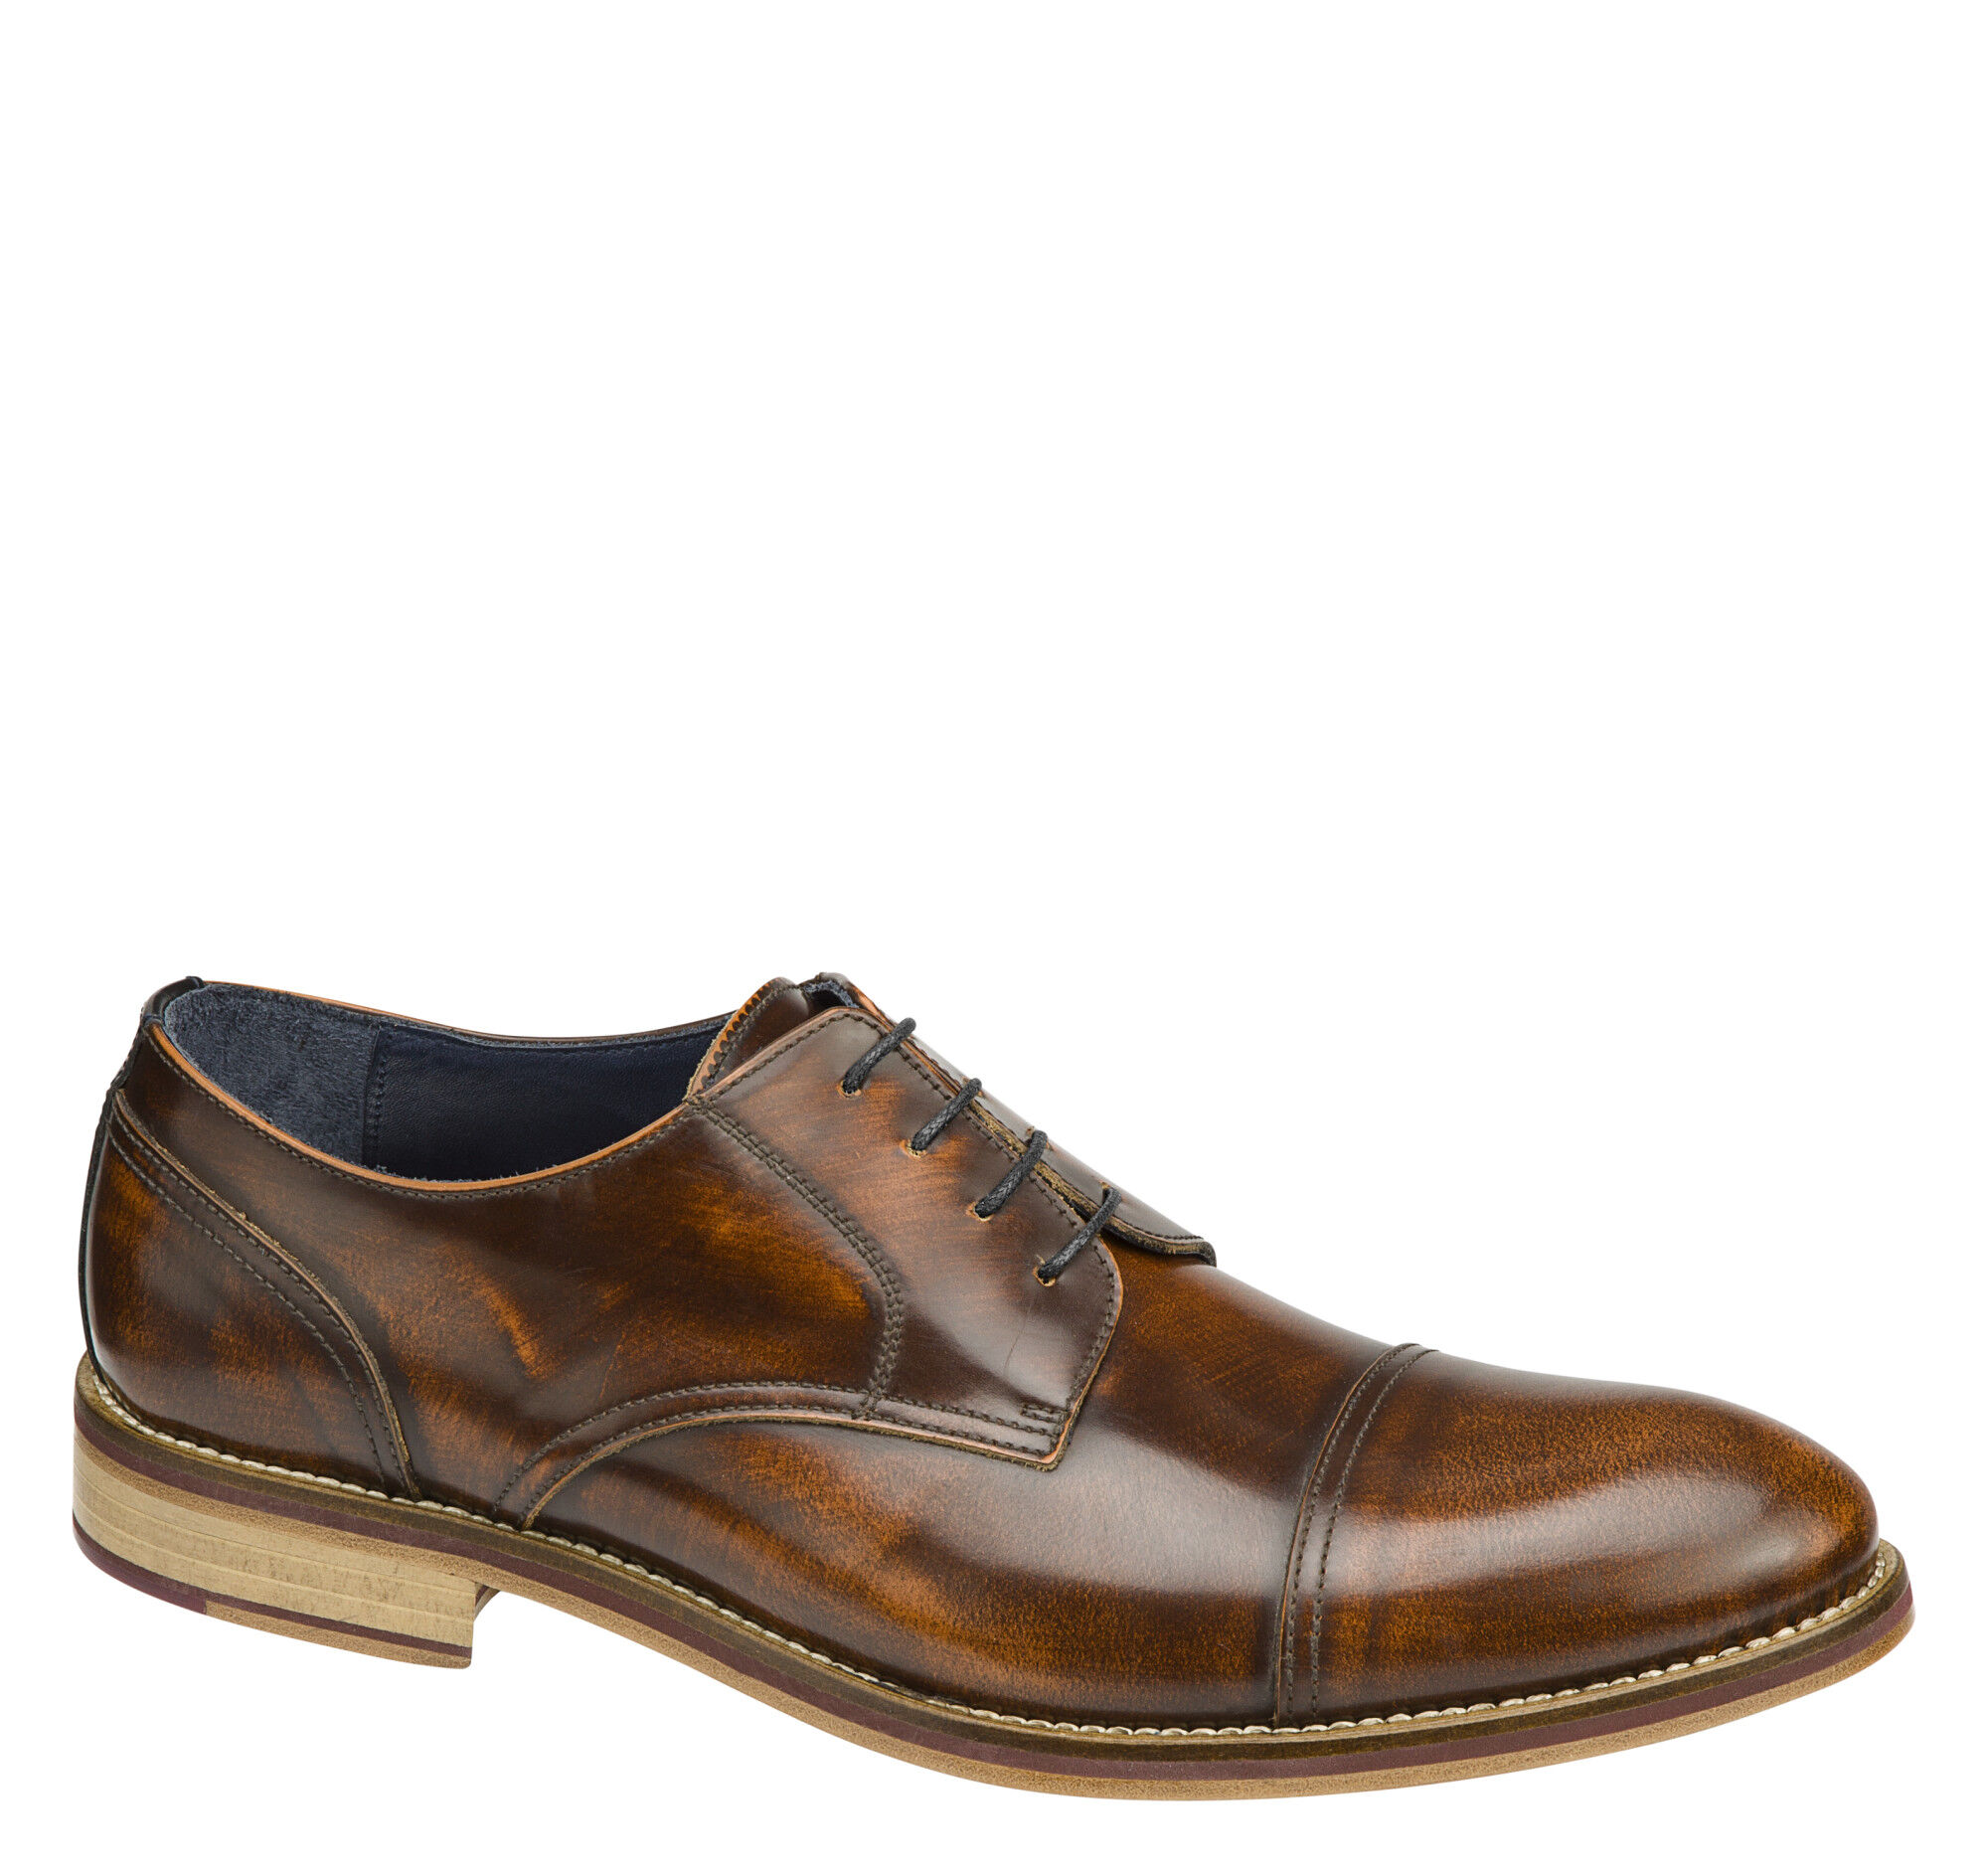 Hannigan Cap Toe Johnston Amp Murphy